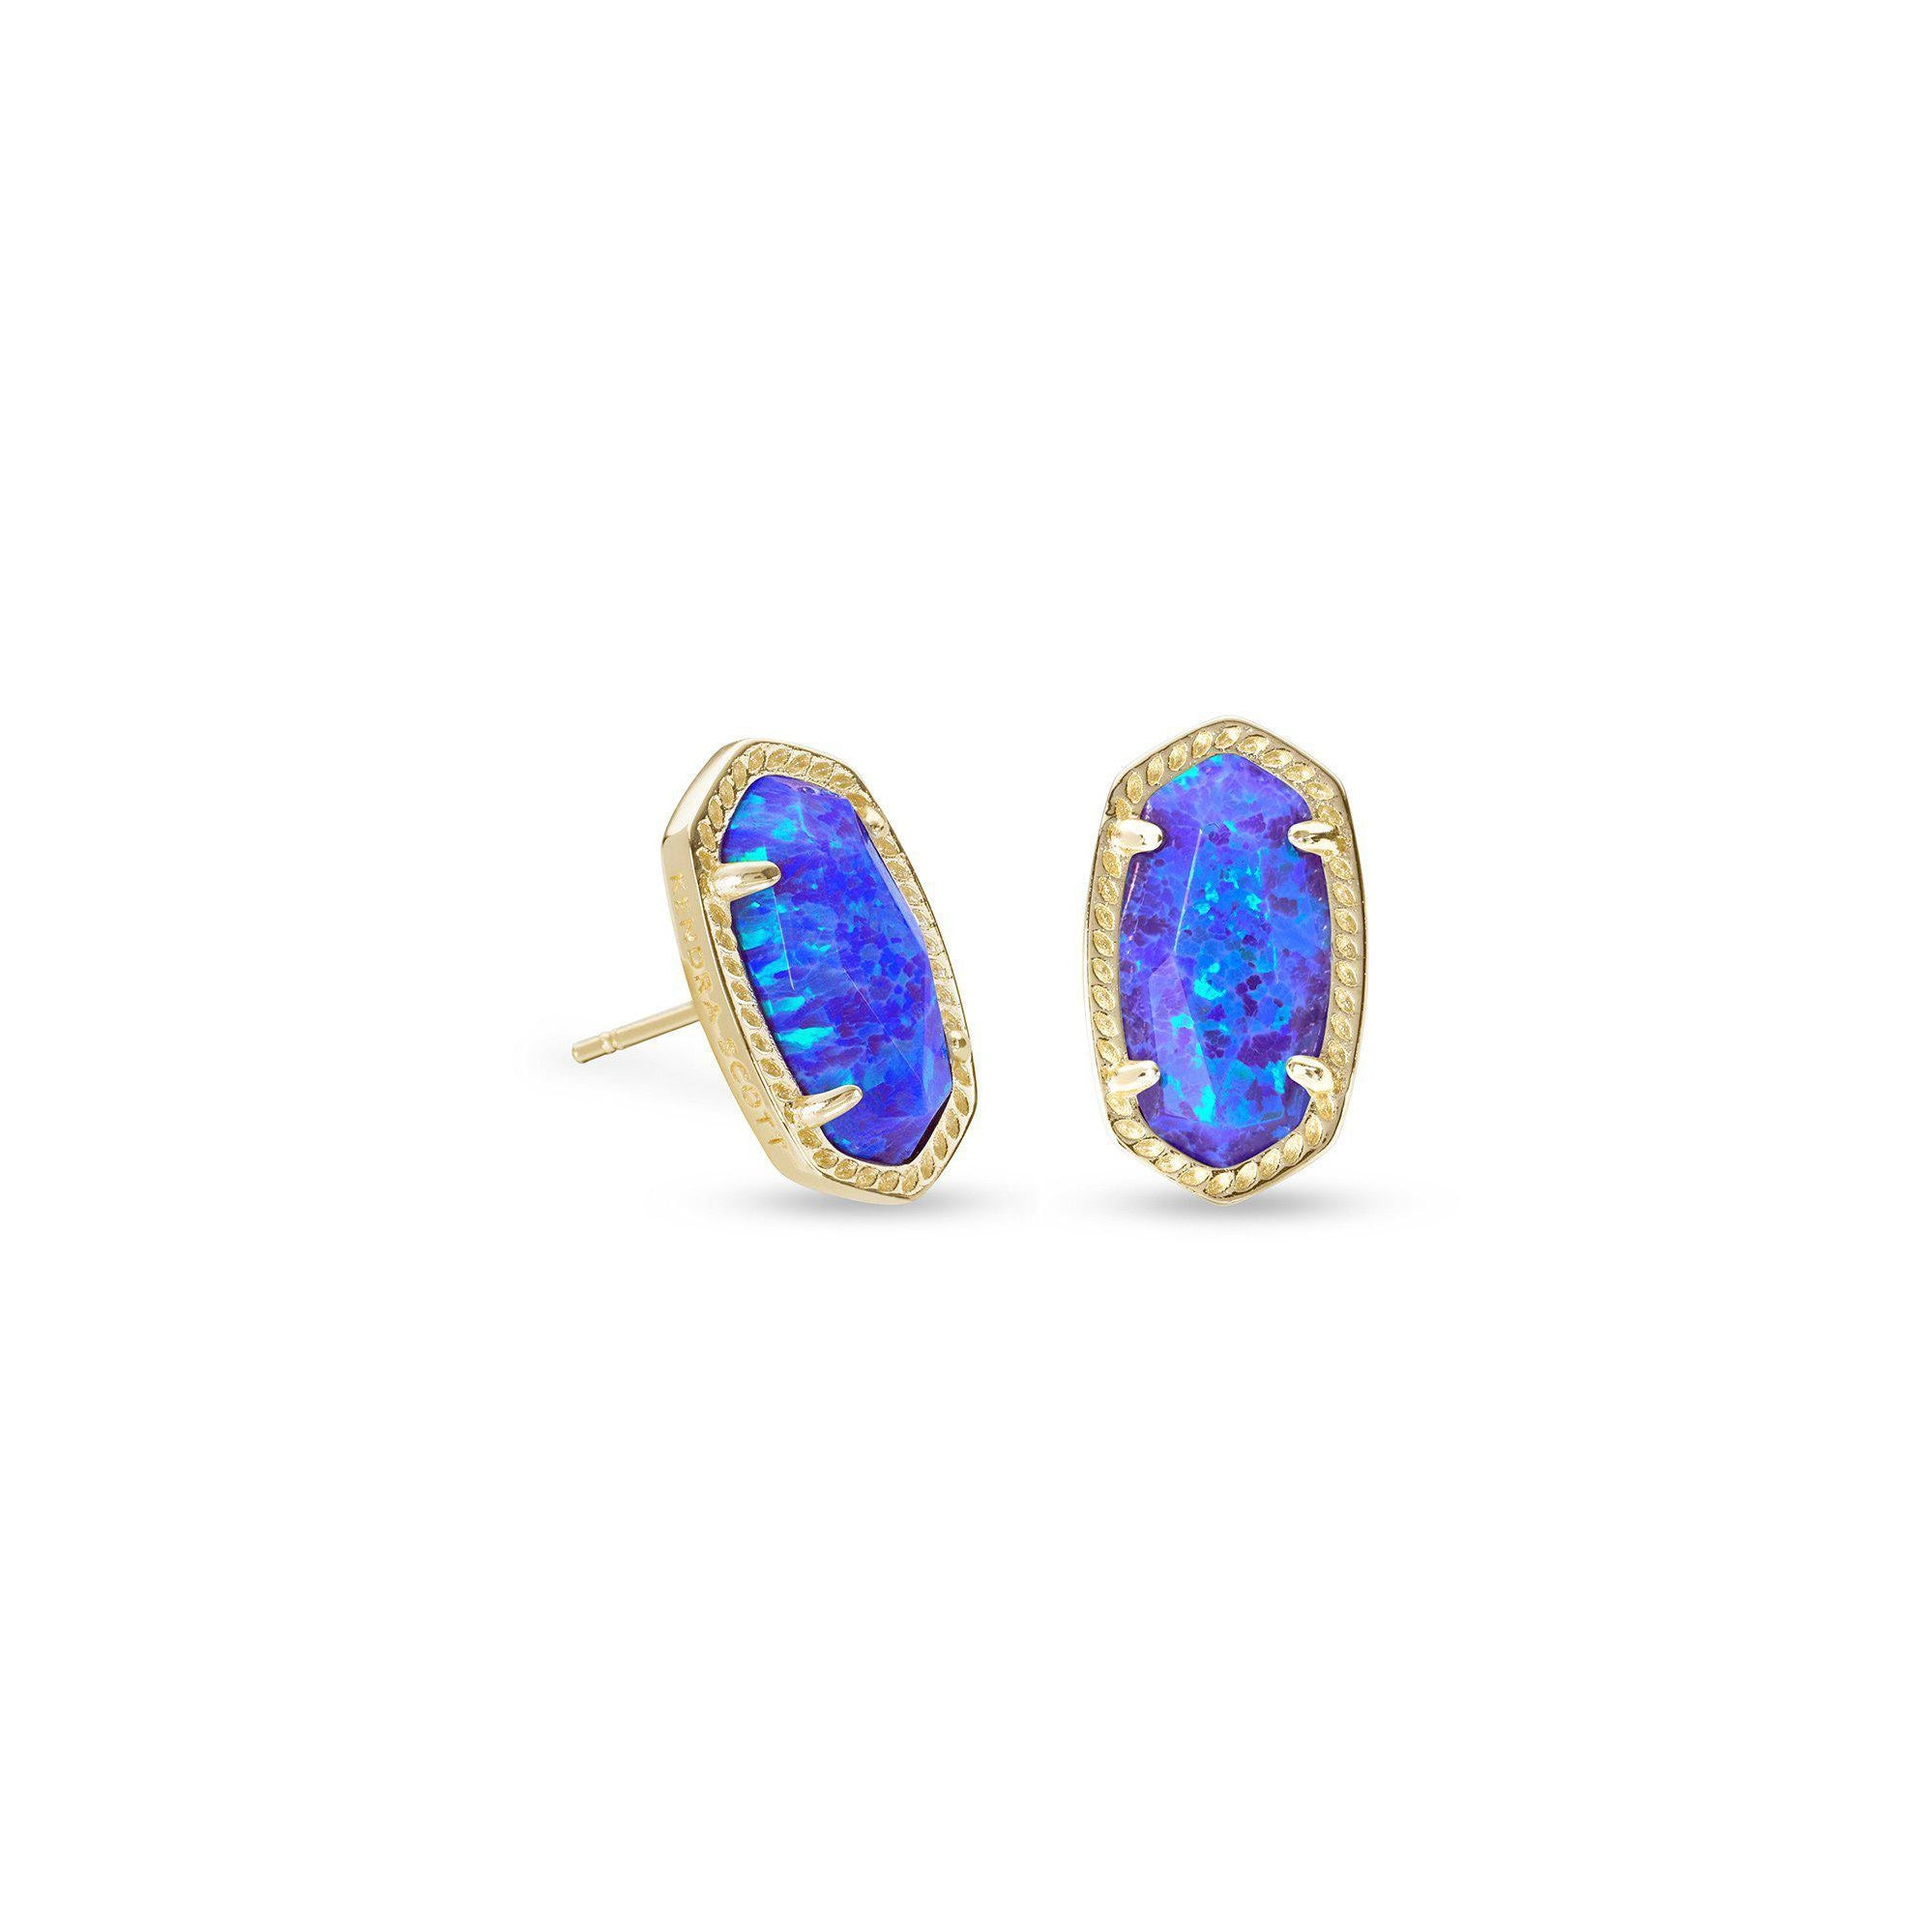 Ellie Earring in Gold Violet Kyocera Opal